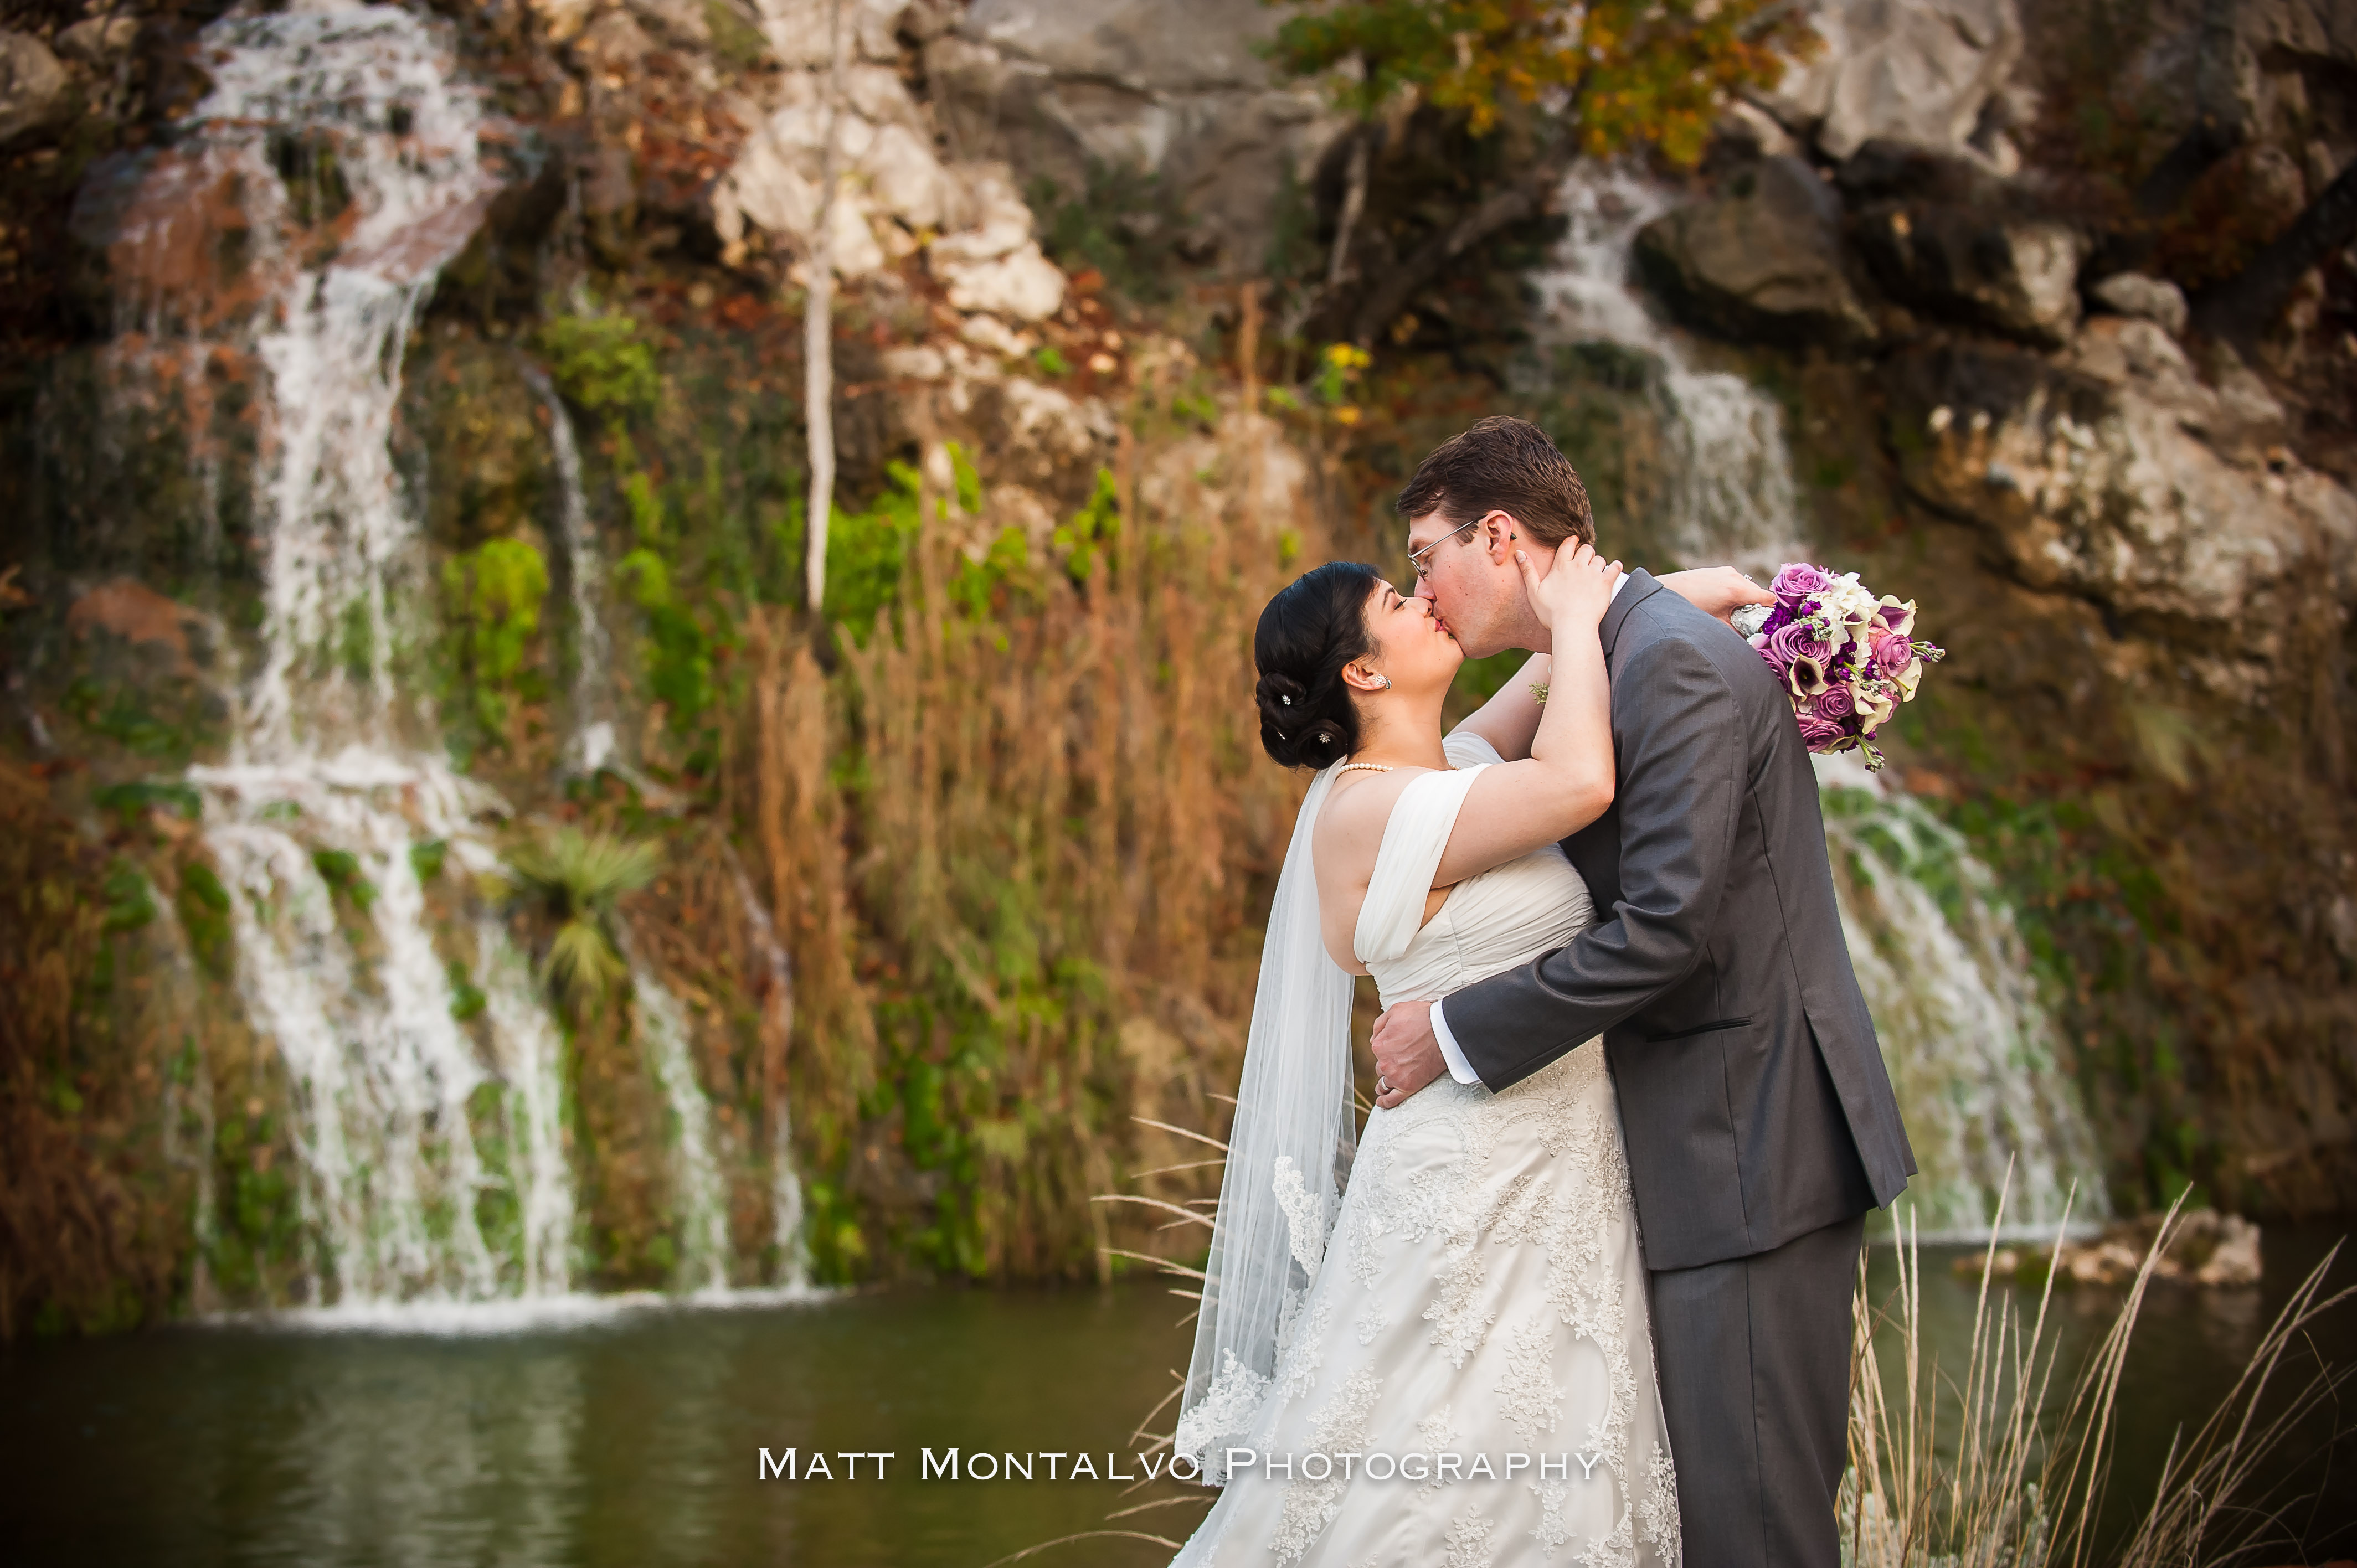 The Lodge at Bridal Veil Falls wedding photography | Jackie & Adam – Spring Branch, TX » Matt Montalvo Photography